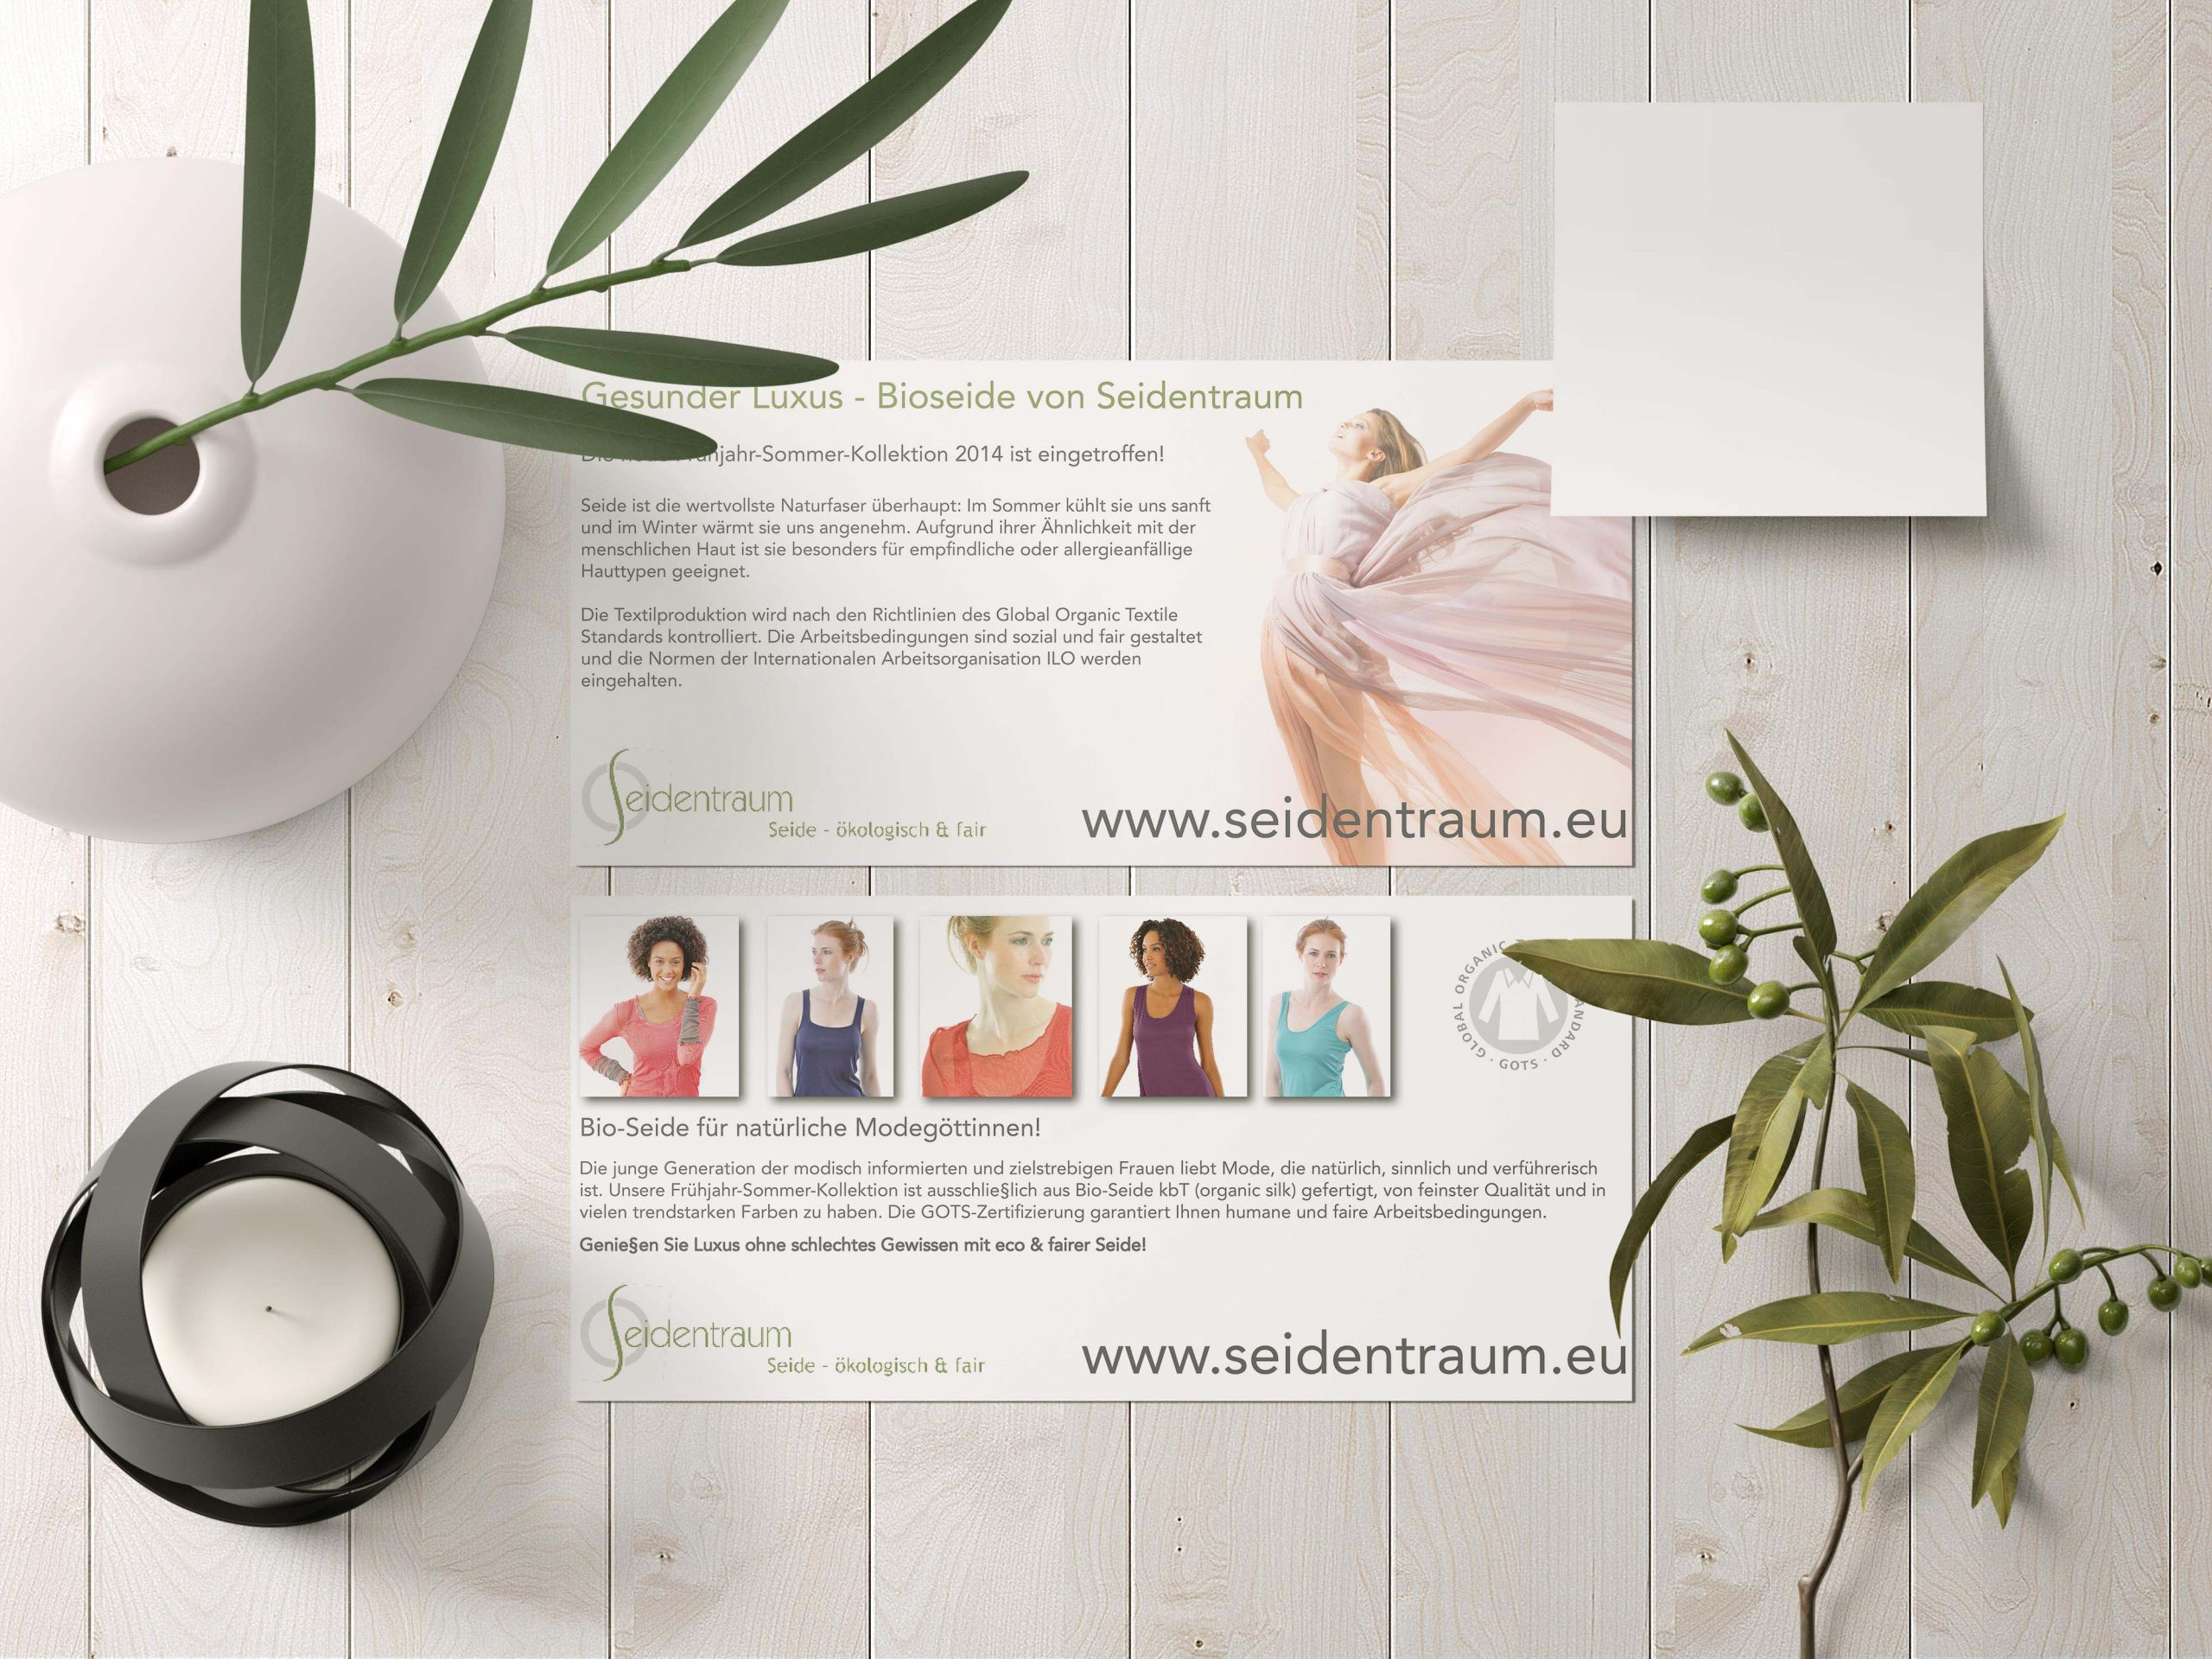 flyer lying on white wooden background with vase and branch